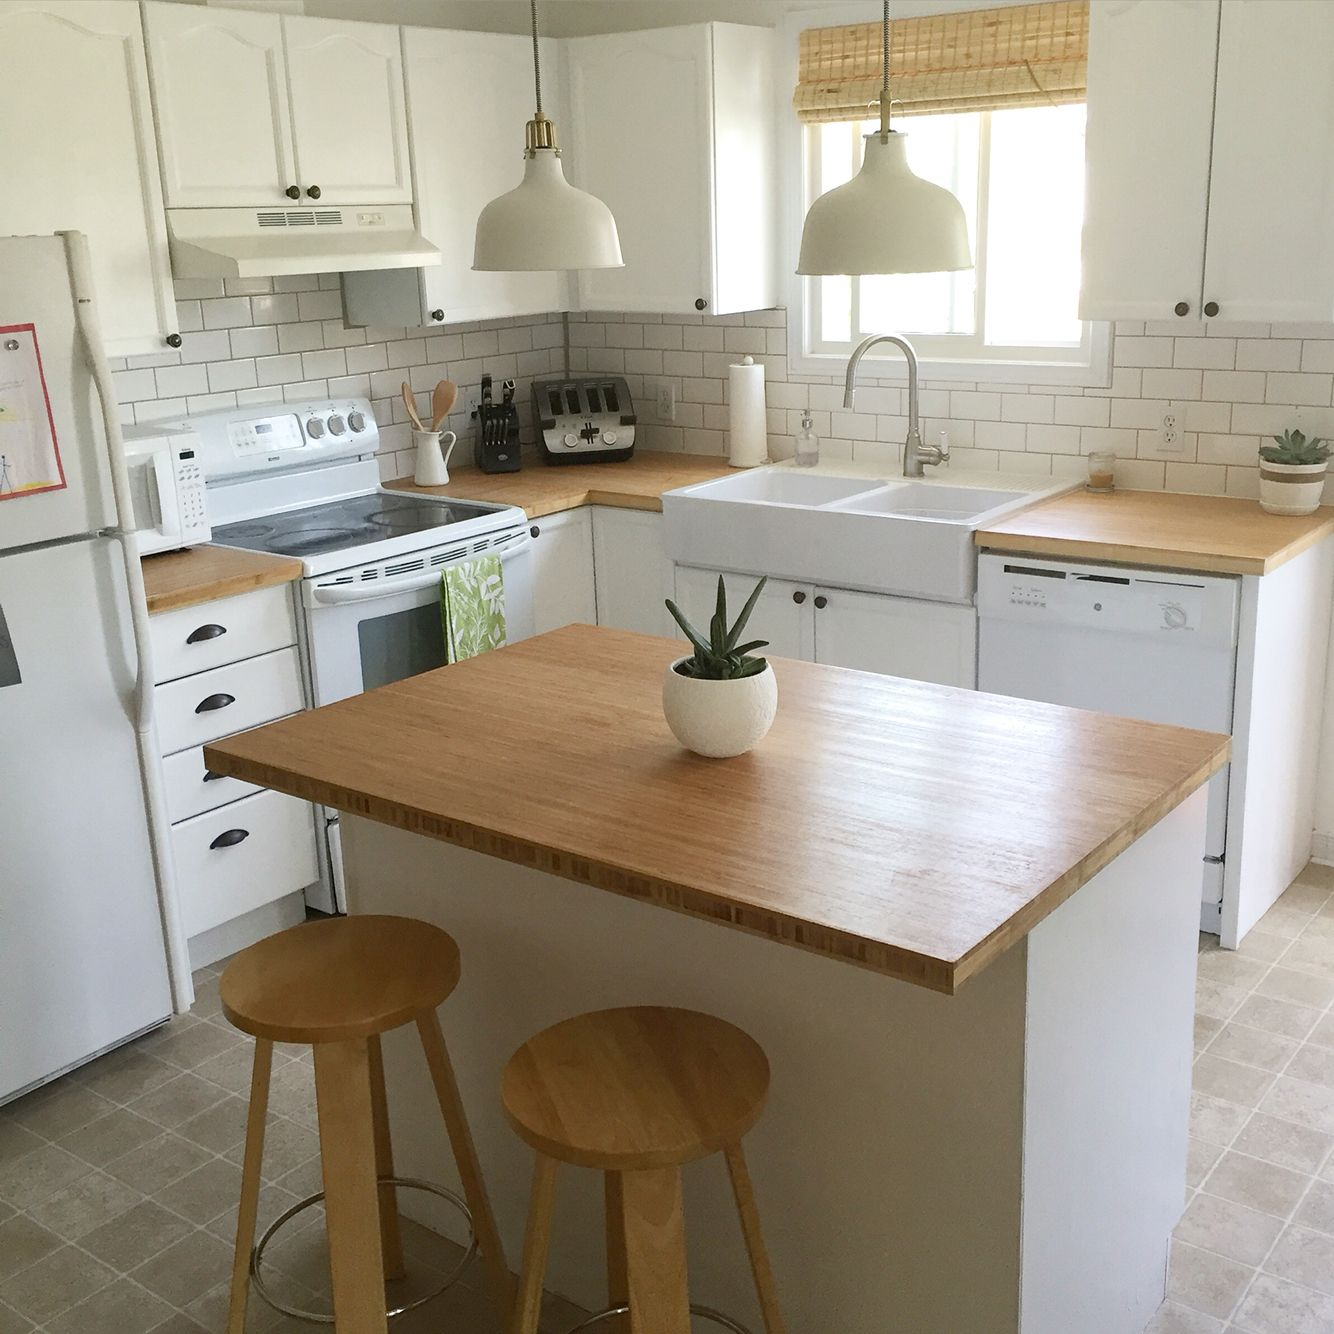 Bamboo counter tops (RONA), subway tile backsplash (HOME DEPOT ...